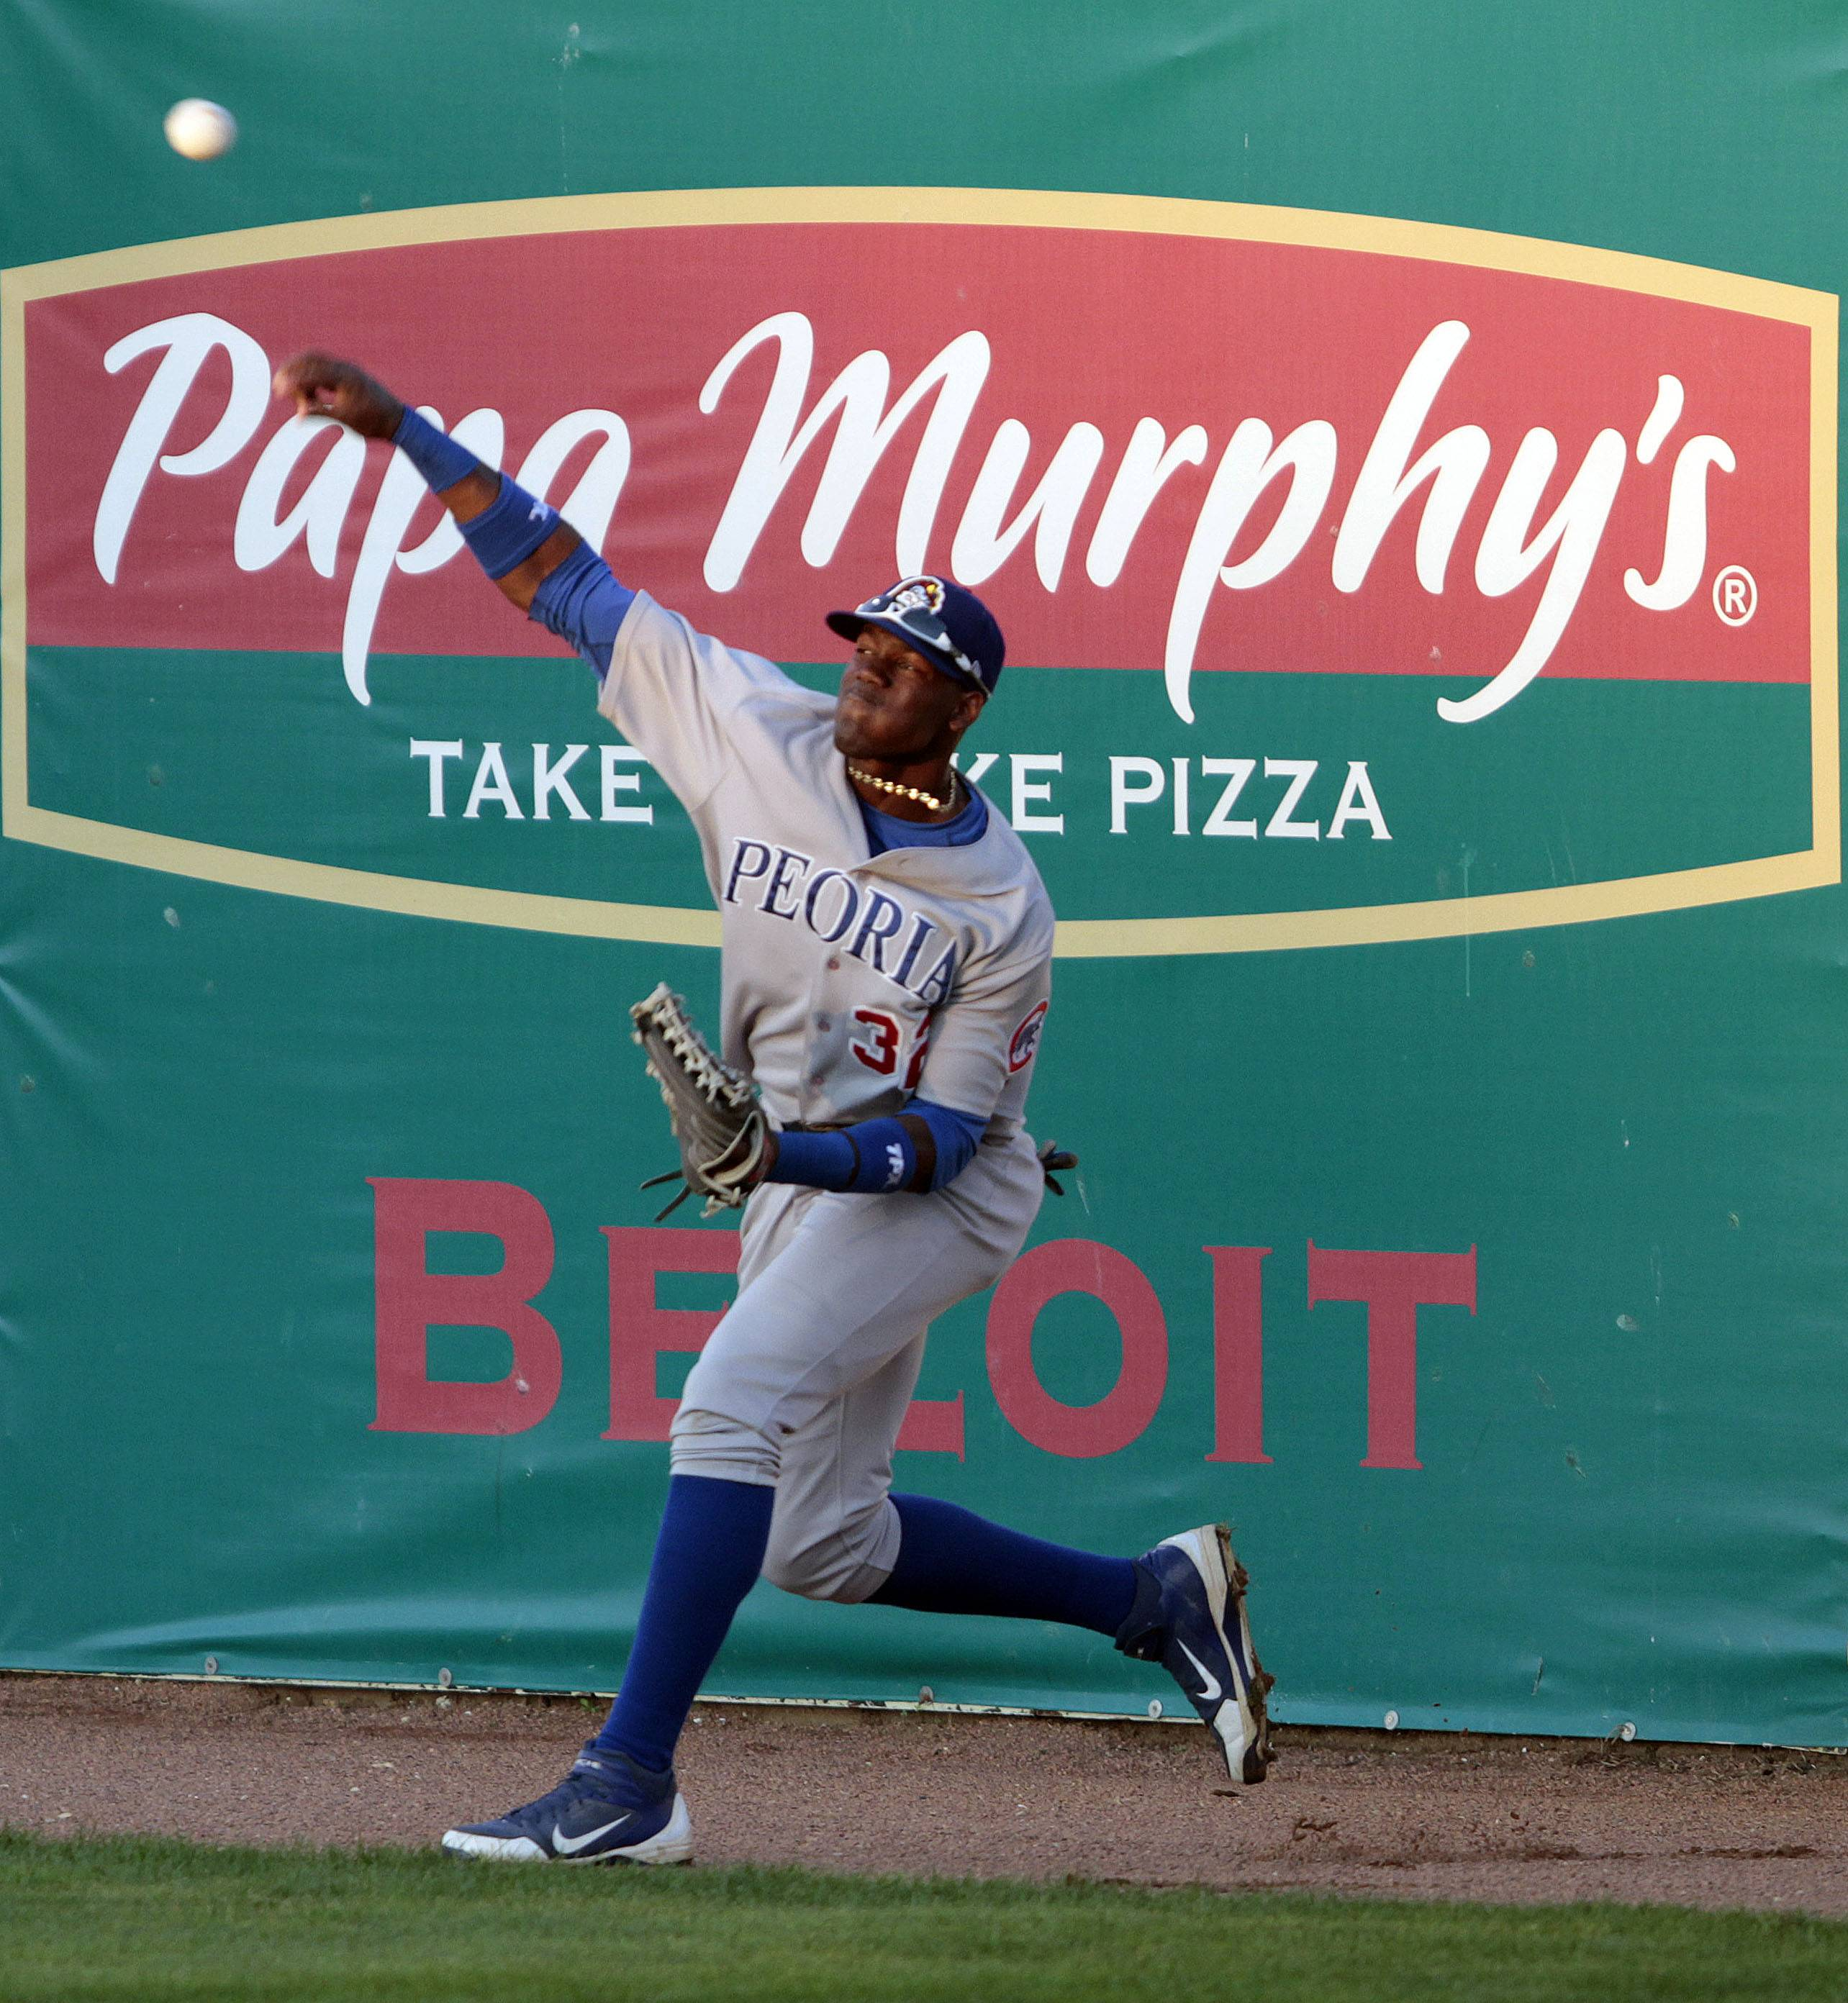 Steve Lundy/slundy@dailyherald.com ¬ Cubs prospect Jorge Soler connects fires the ball to second as the Class A Peoria Chiefs took on the Beliot Snappers Monday night in Beliot, Wisconsin. Soler signed a 9-year, $30 million contract this summer.